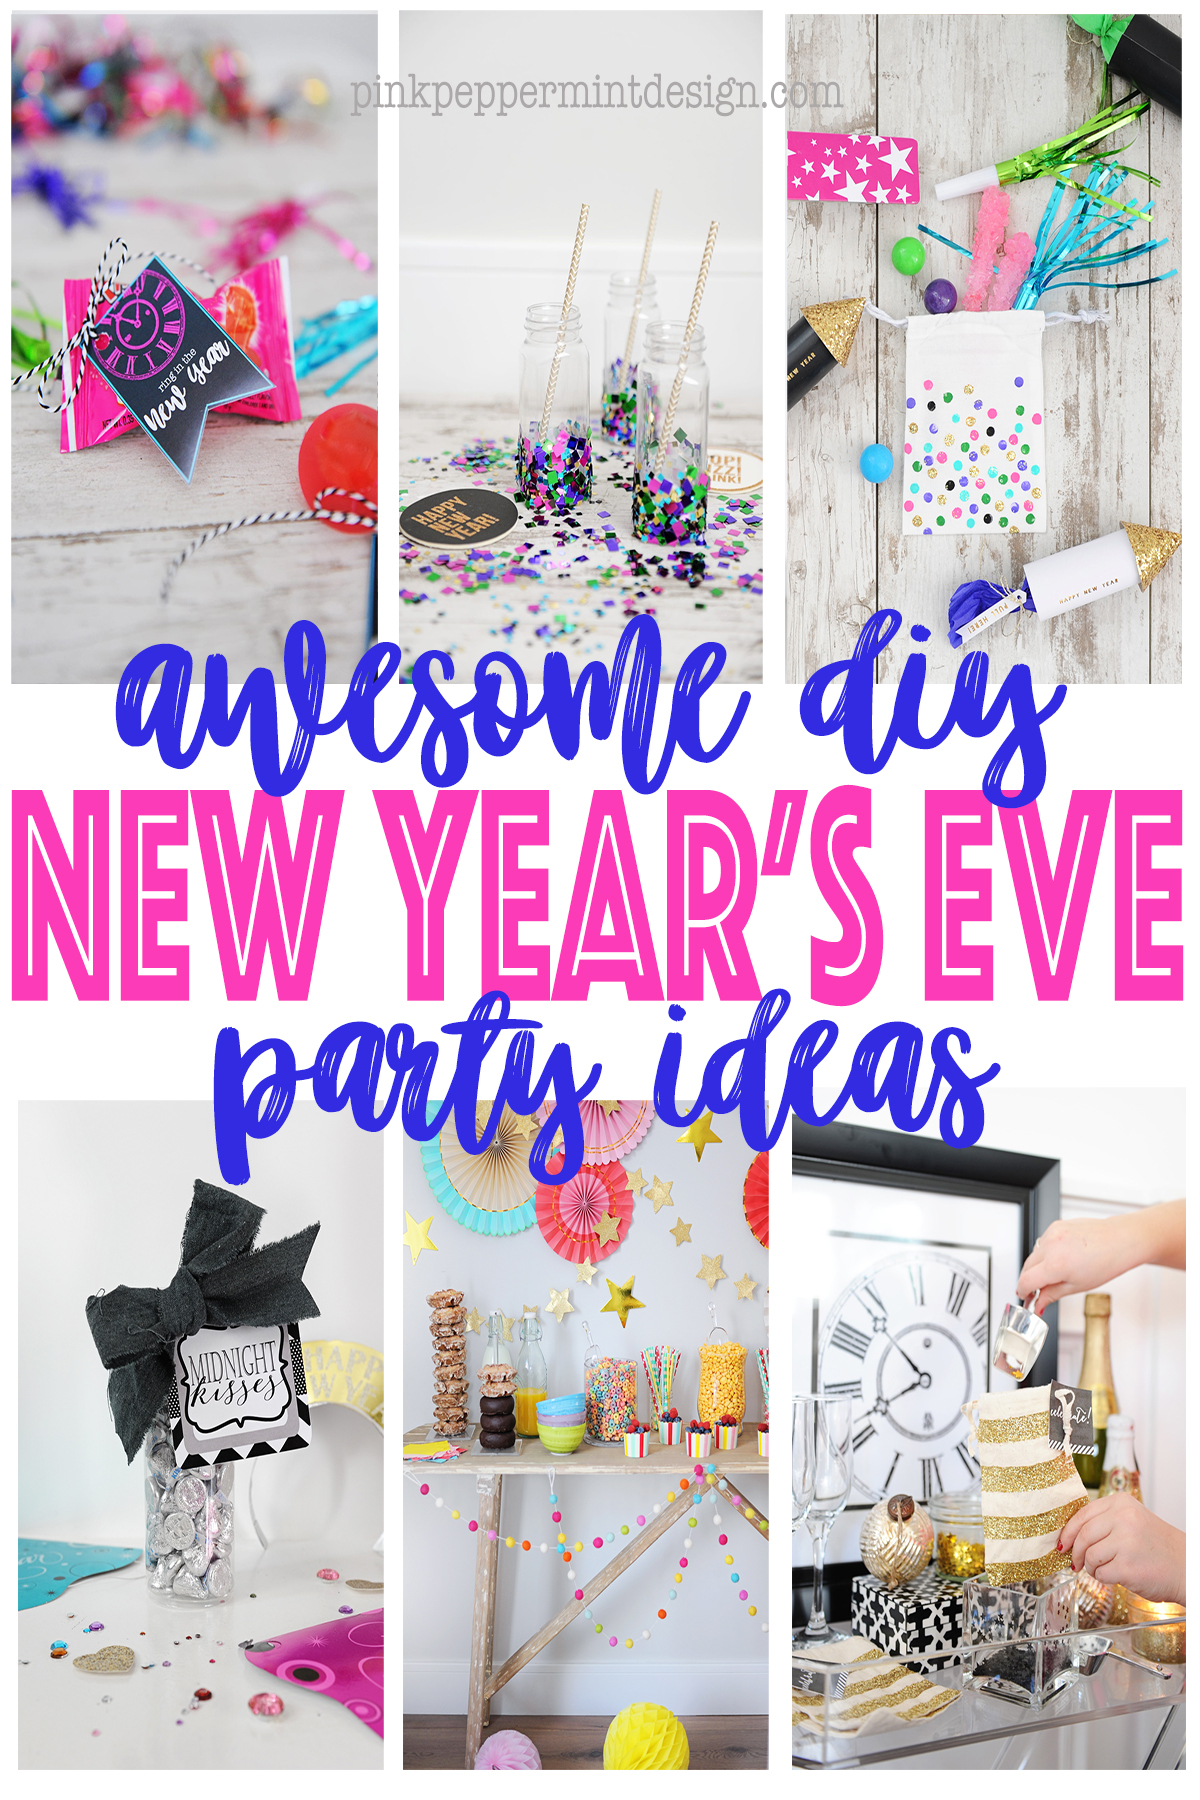 pink peppermint design diy new years eve party ideas